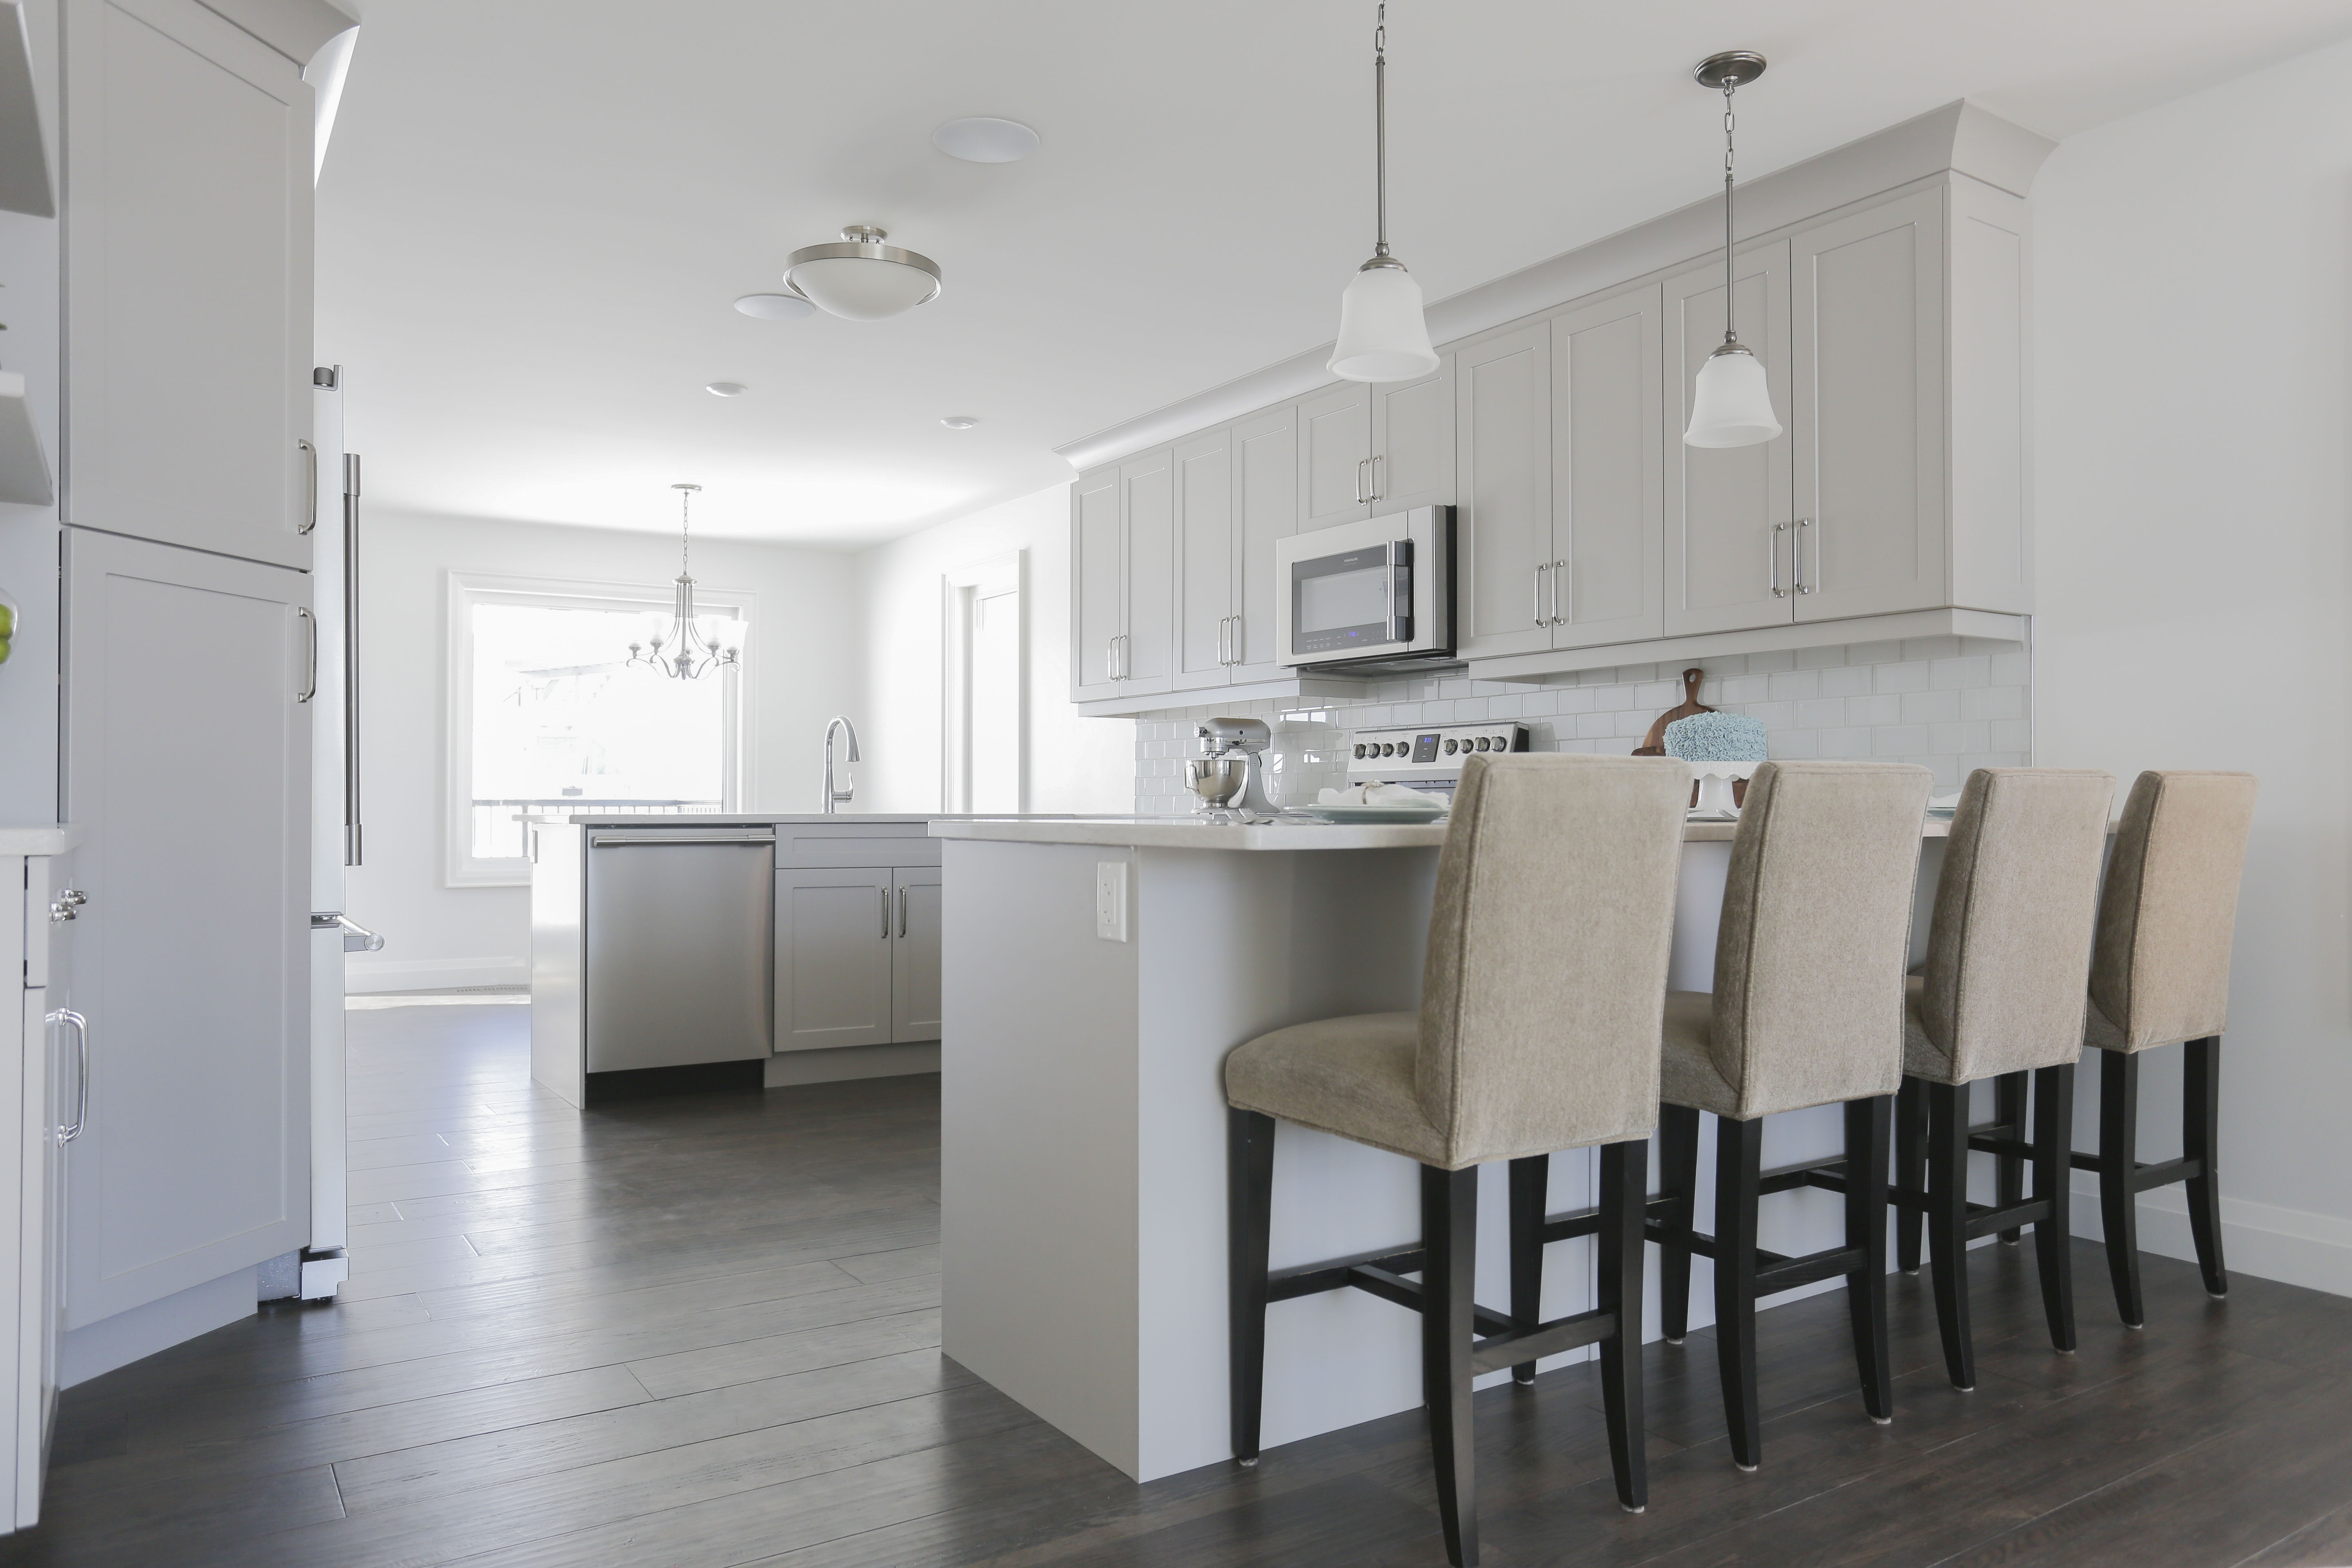 Inspired Cabinetry And Granite Kitchen Renovations